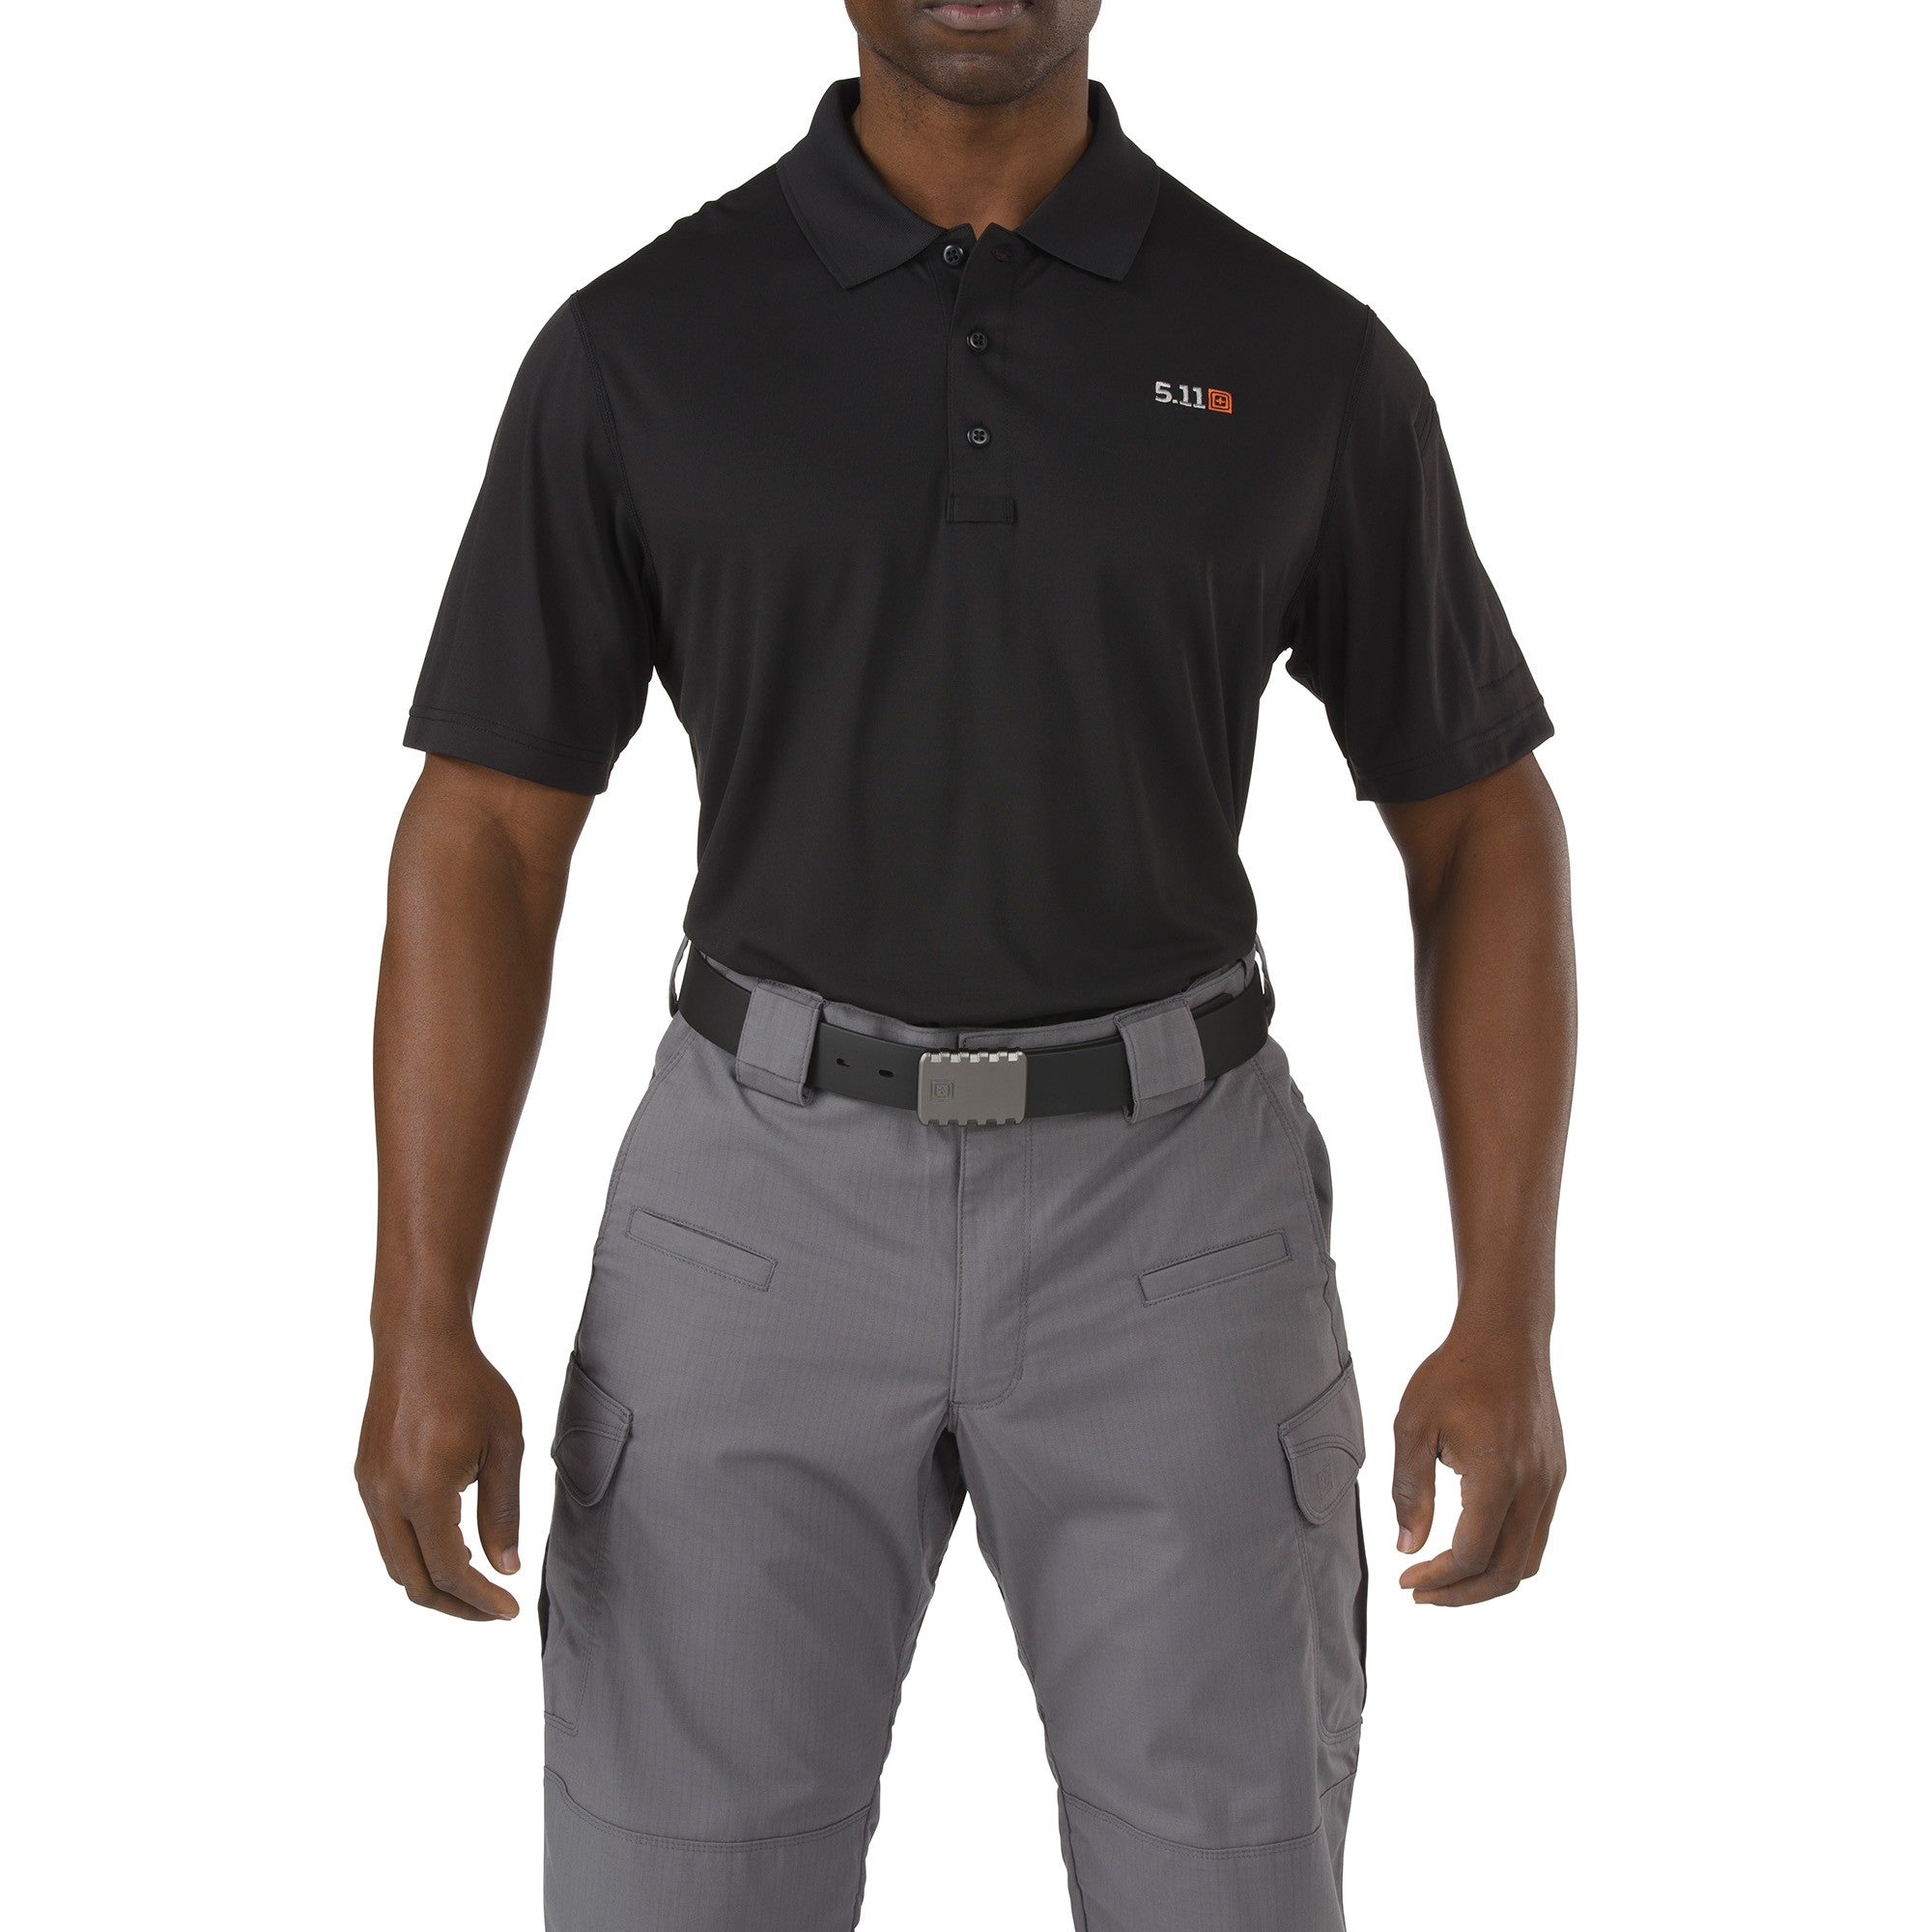 5.11 Tactical 71036 Men Pinnacle Short Sleeve Polo